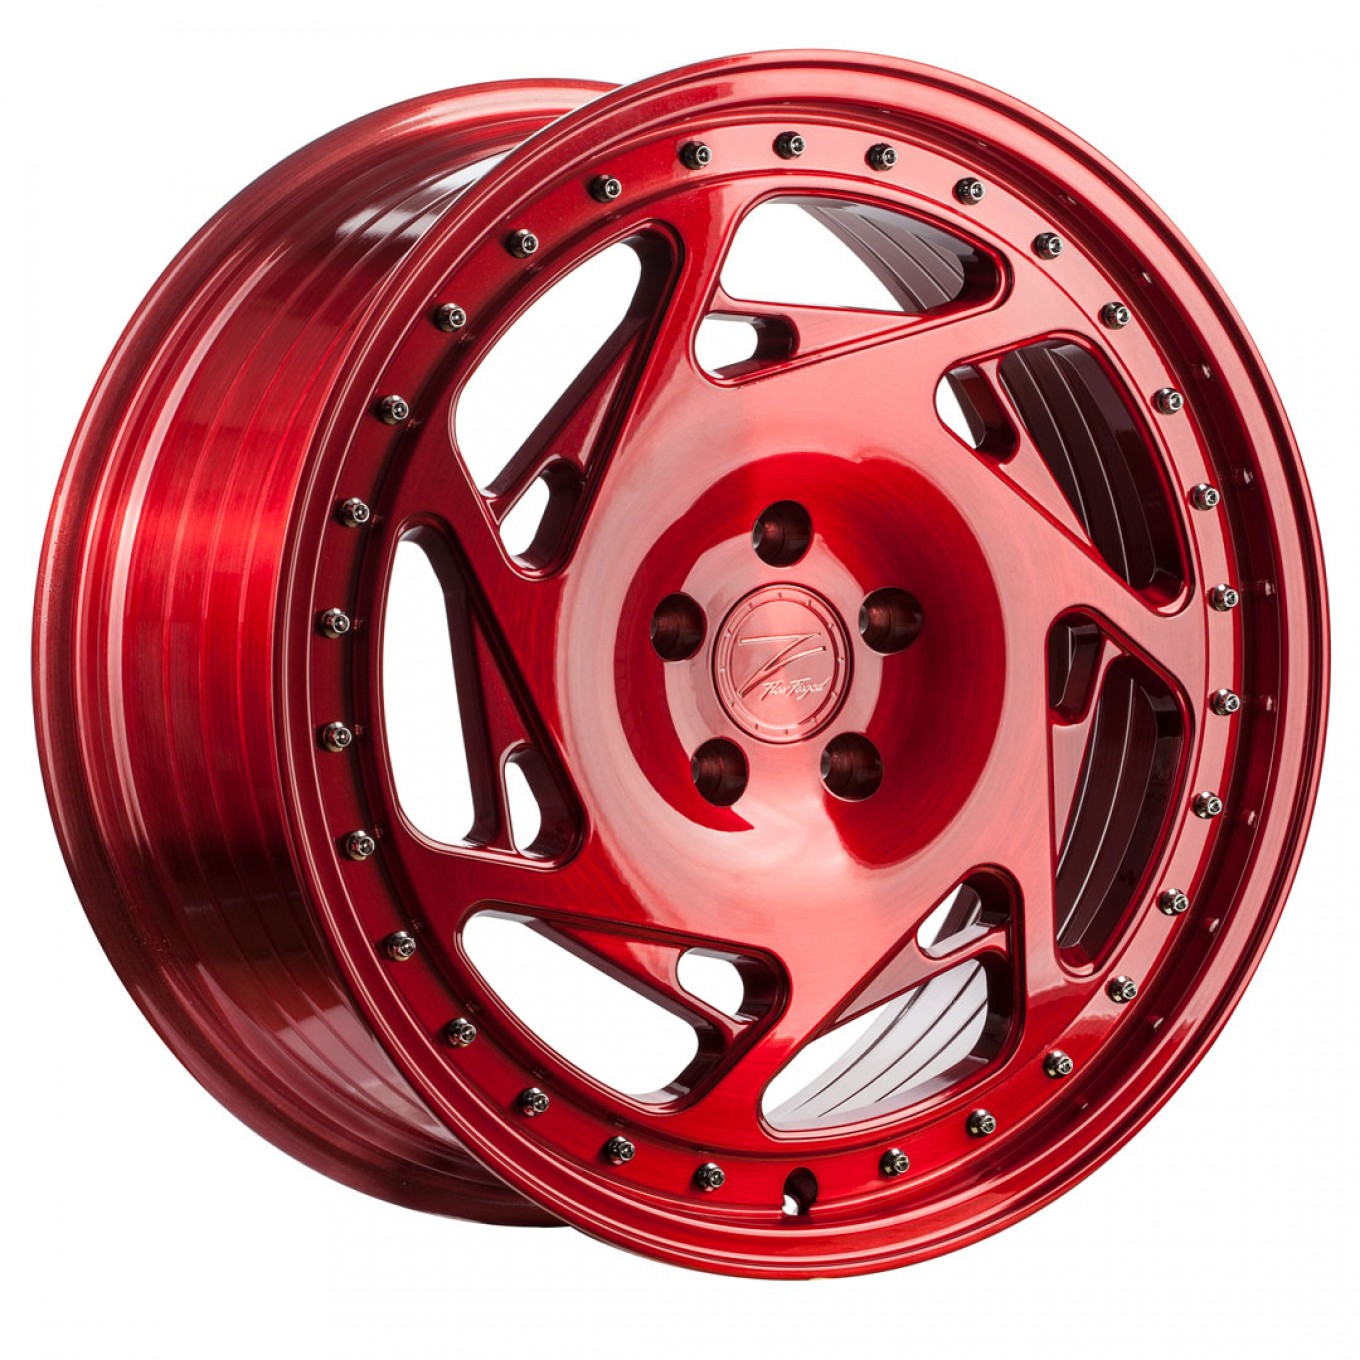 ZP5.1 Flow Forged | Brushed Candy Red